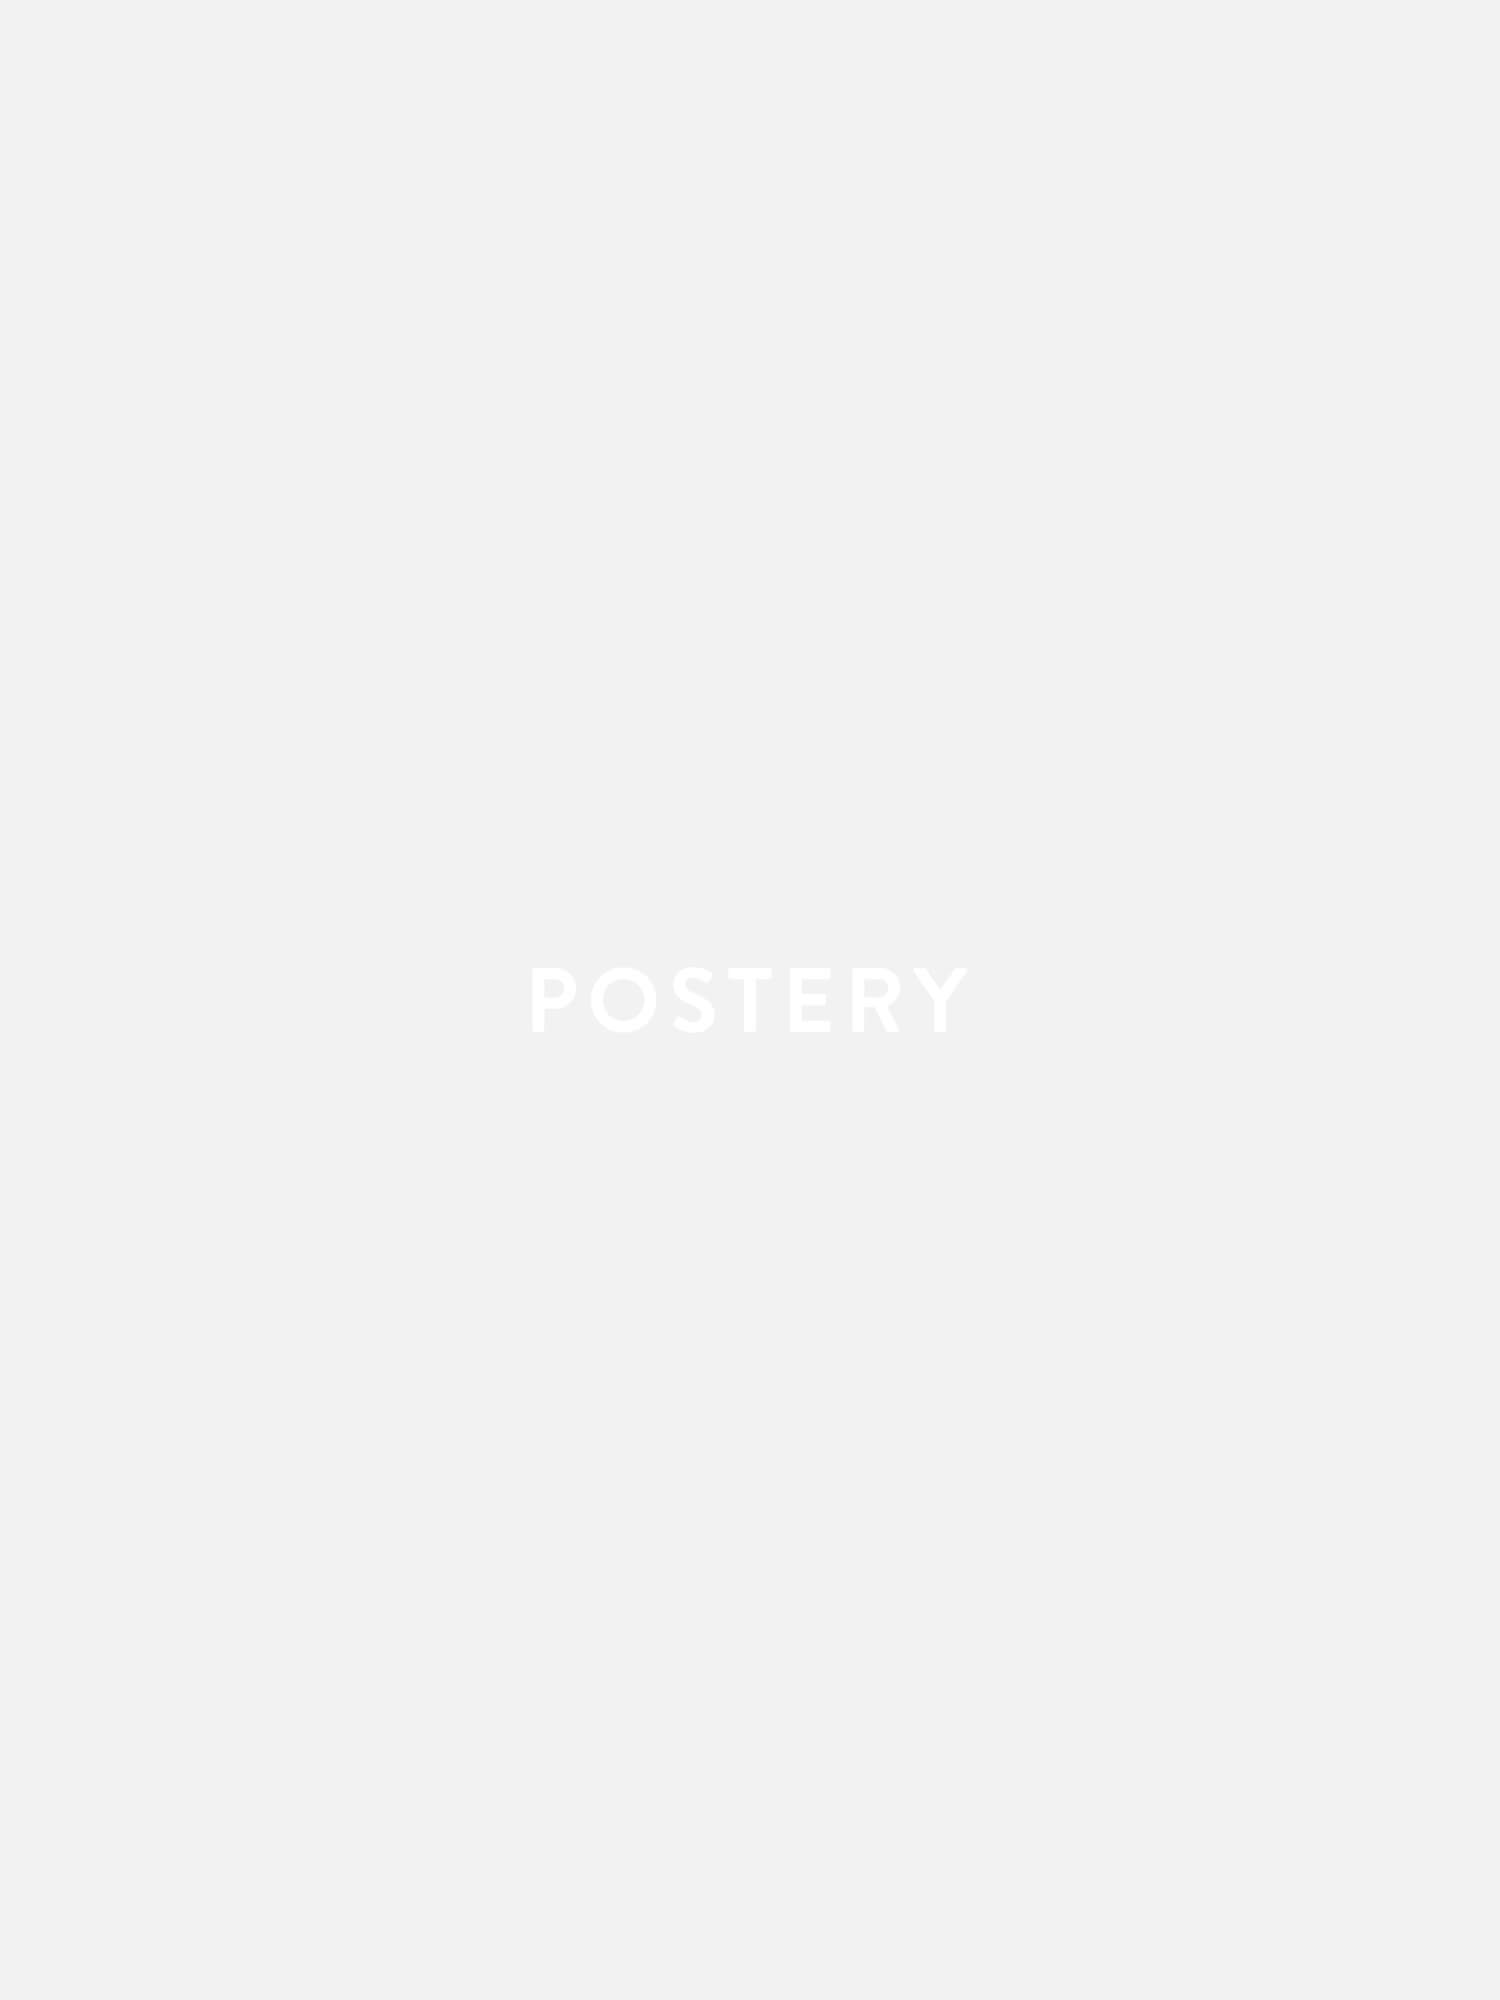 Abstract Lily Poster